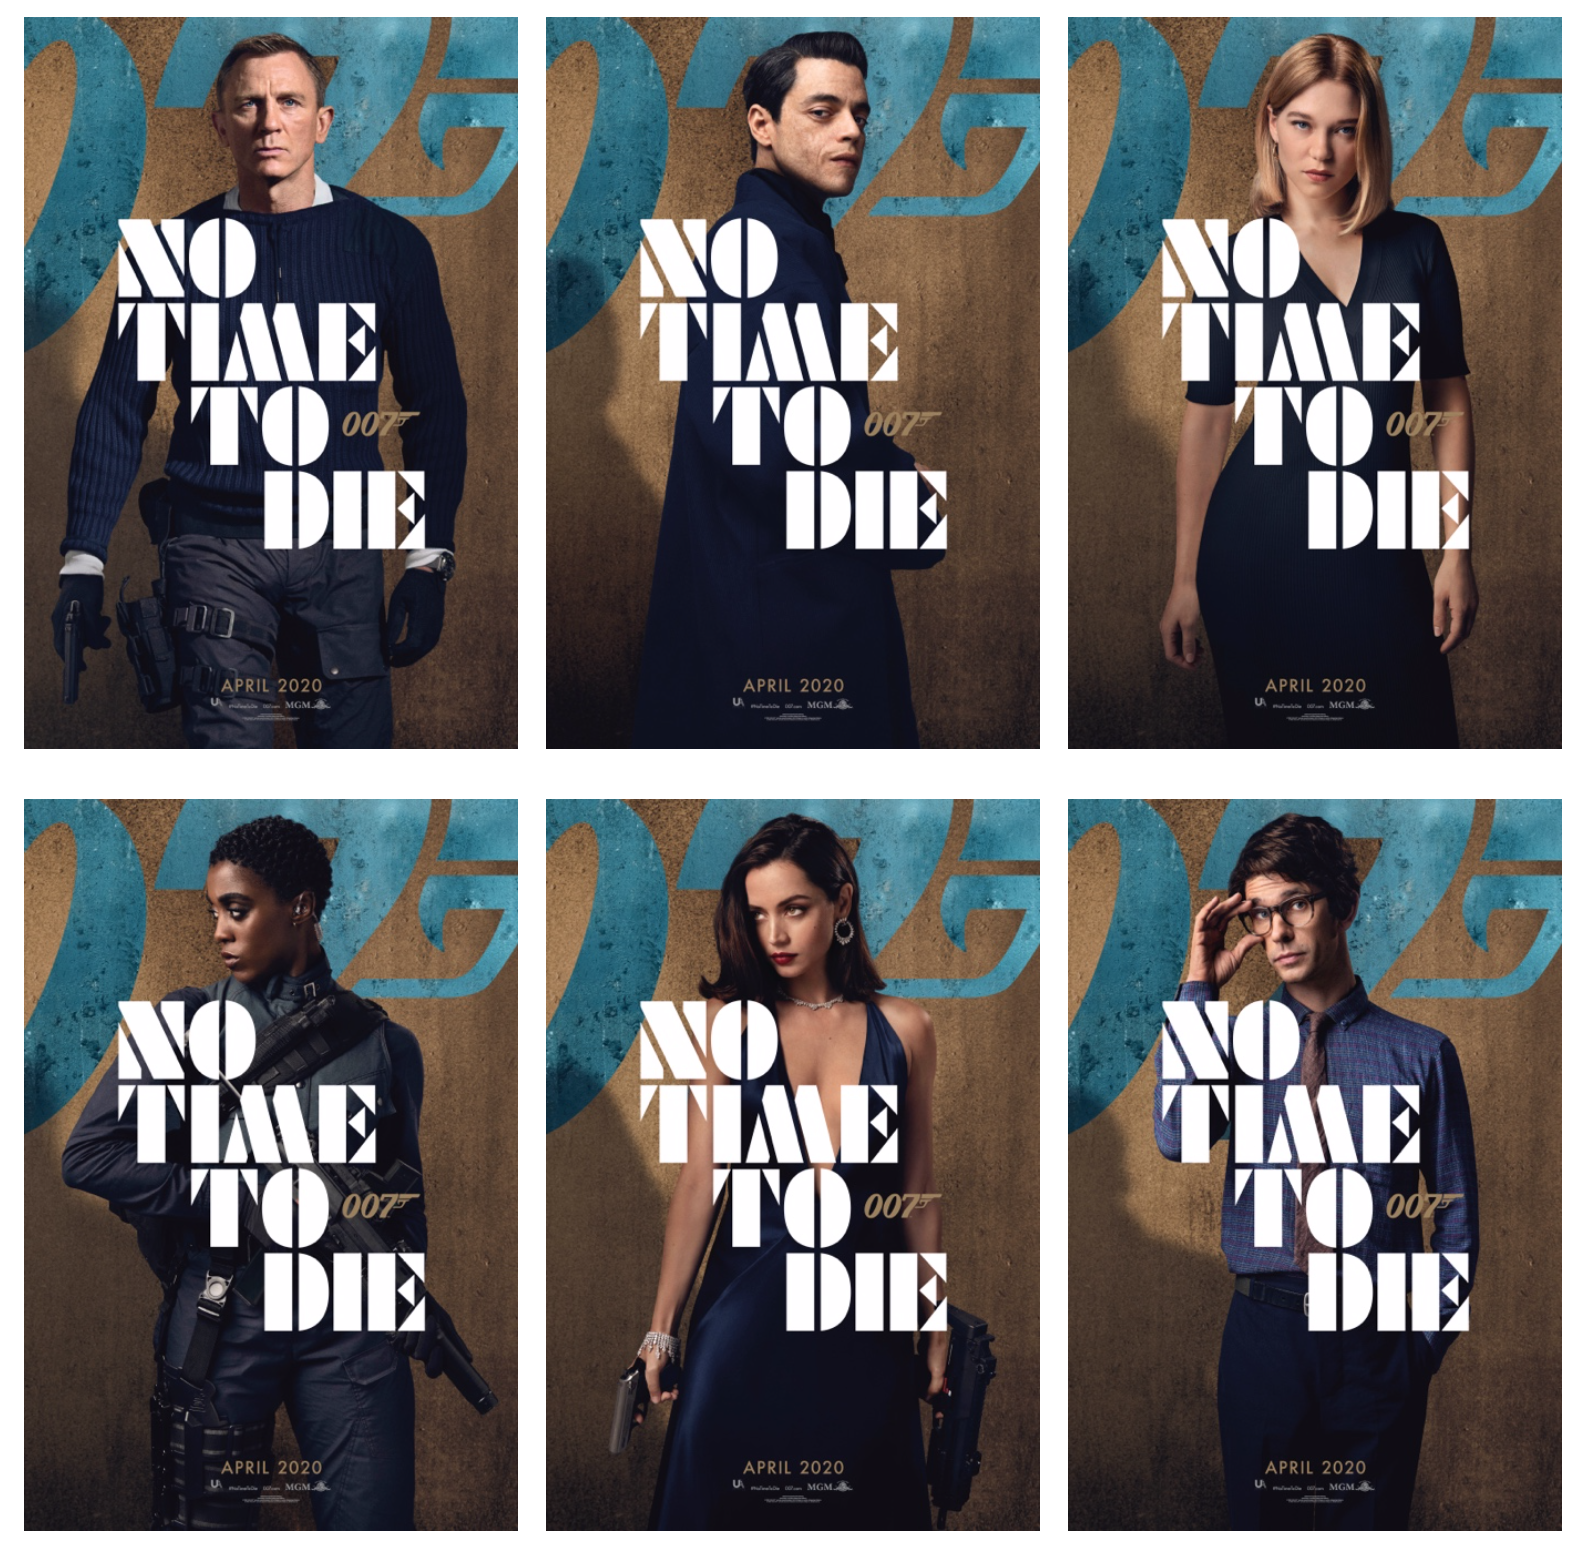 United Artists Releases No Time To Die Posters Highlighting